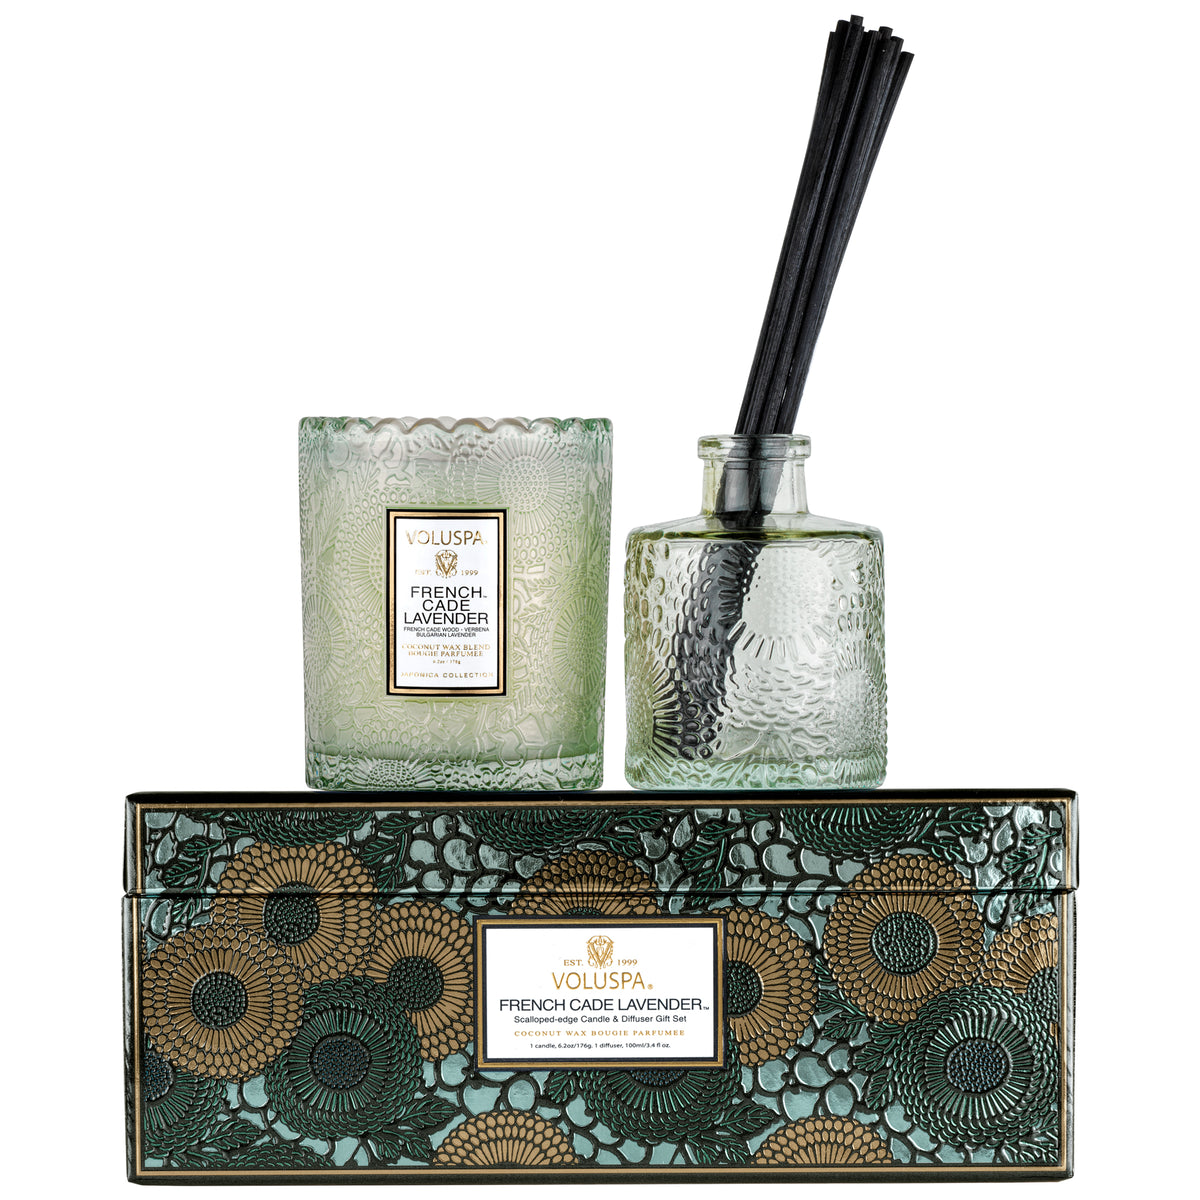 French Cade Lavender - Candle & Diffuser Gift Set - 1